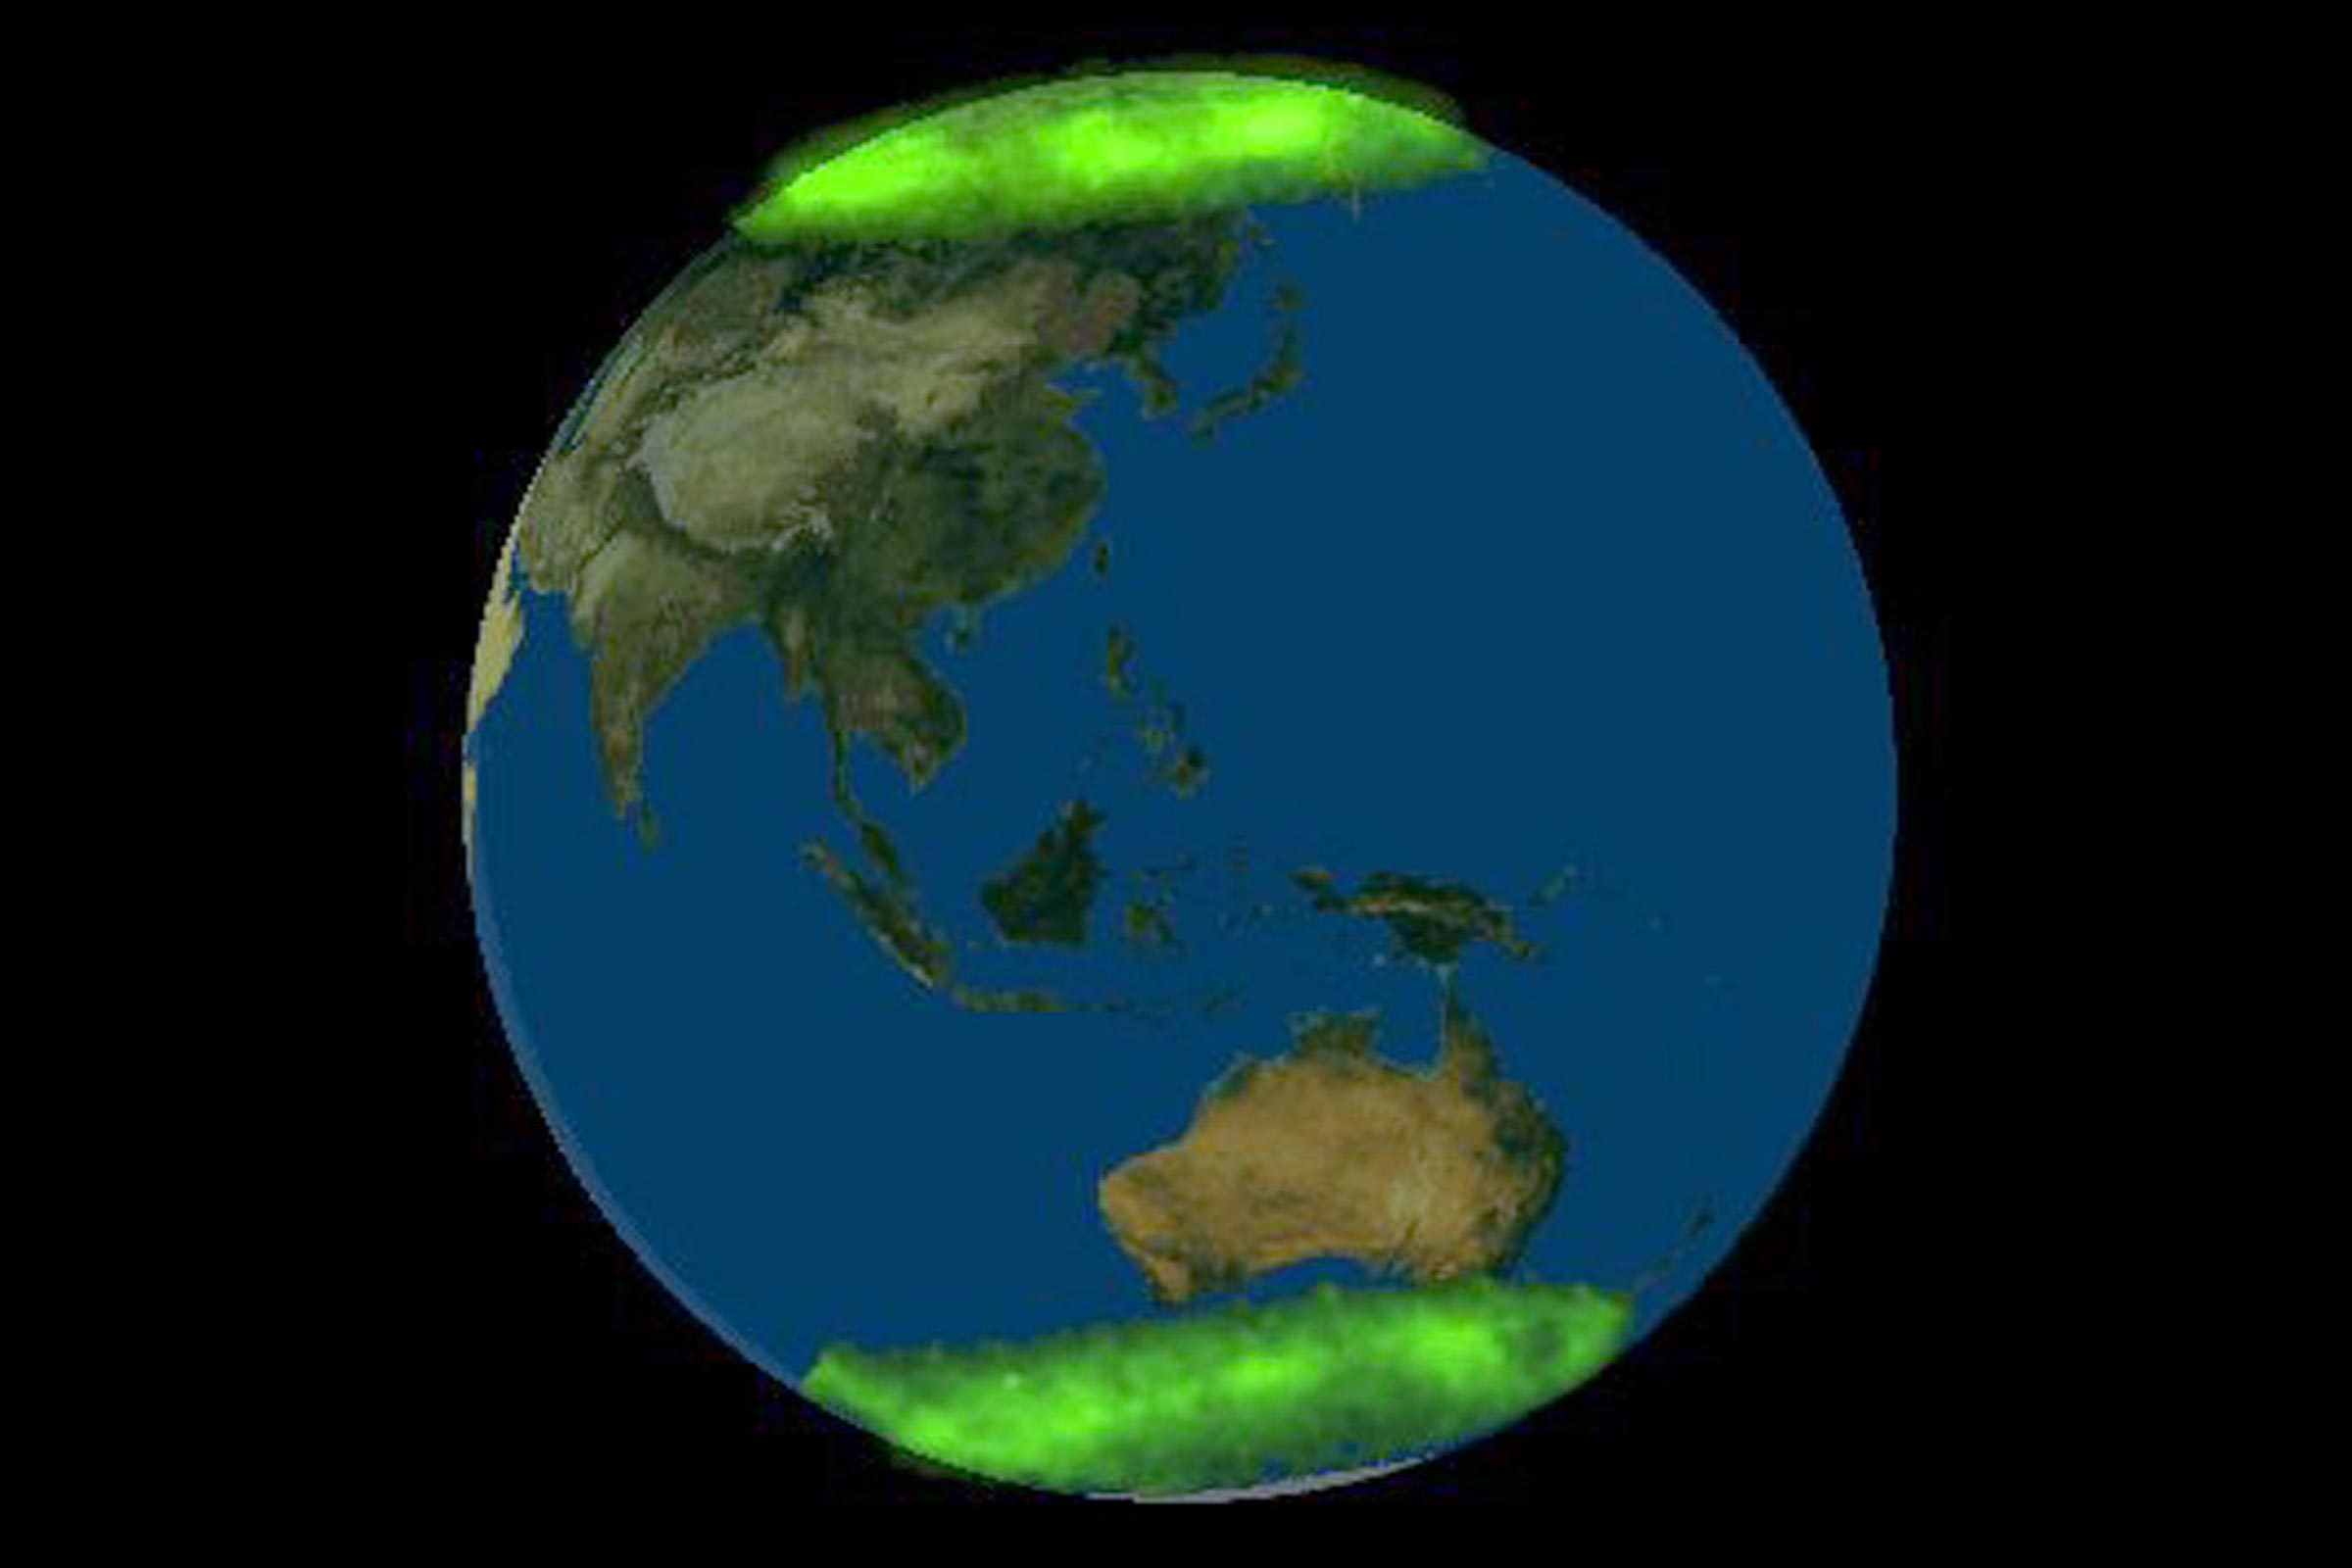 FIRST PHOTOGRAPH OF THE EARTH SHOWING BOTH AURORAS